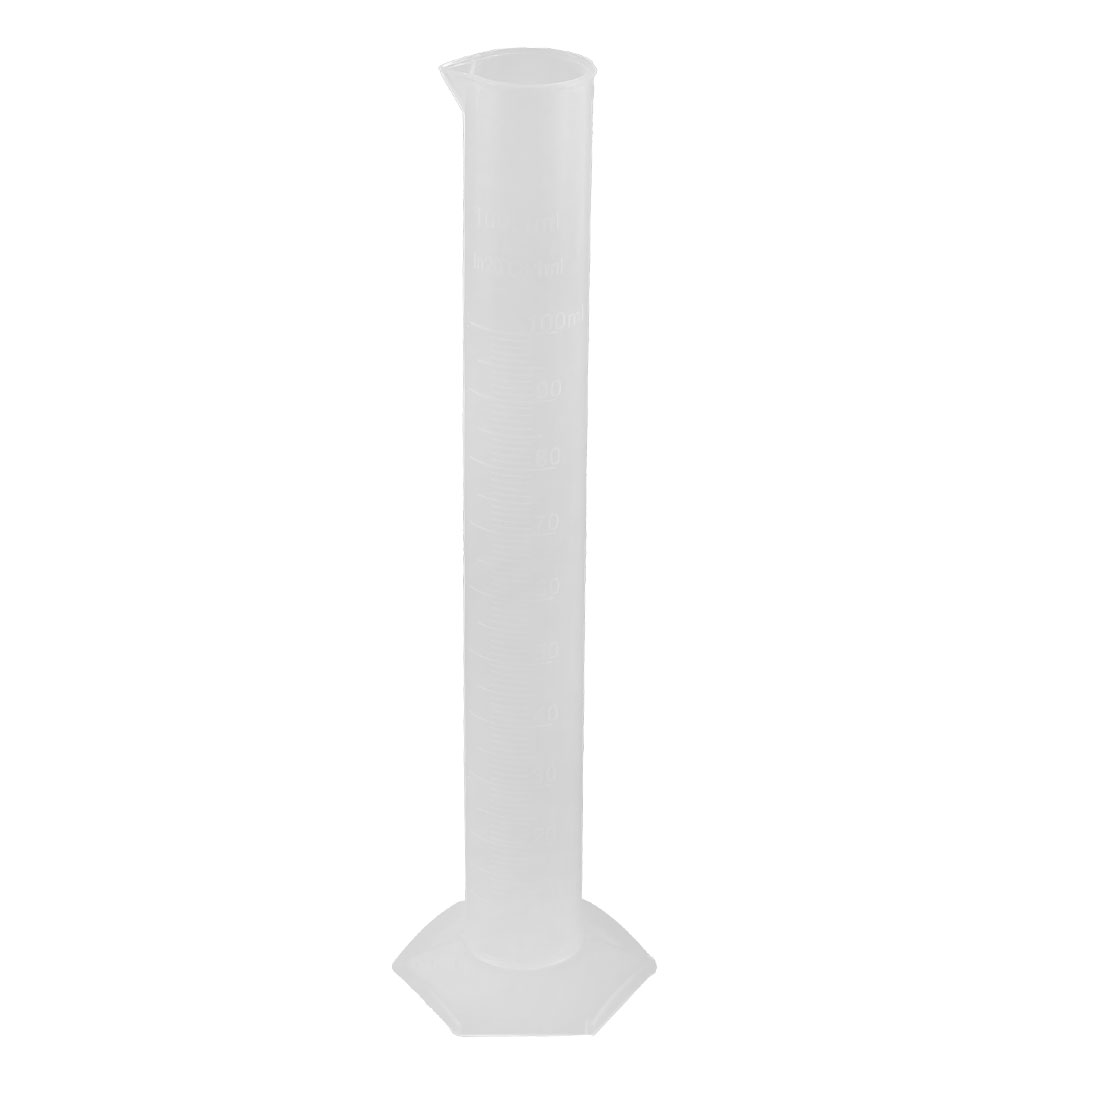 Plastic Laboratory Measuring Tool Hex Base Graduated Cylinder Clear 100ML